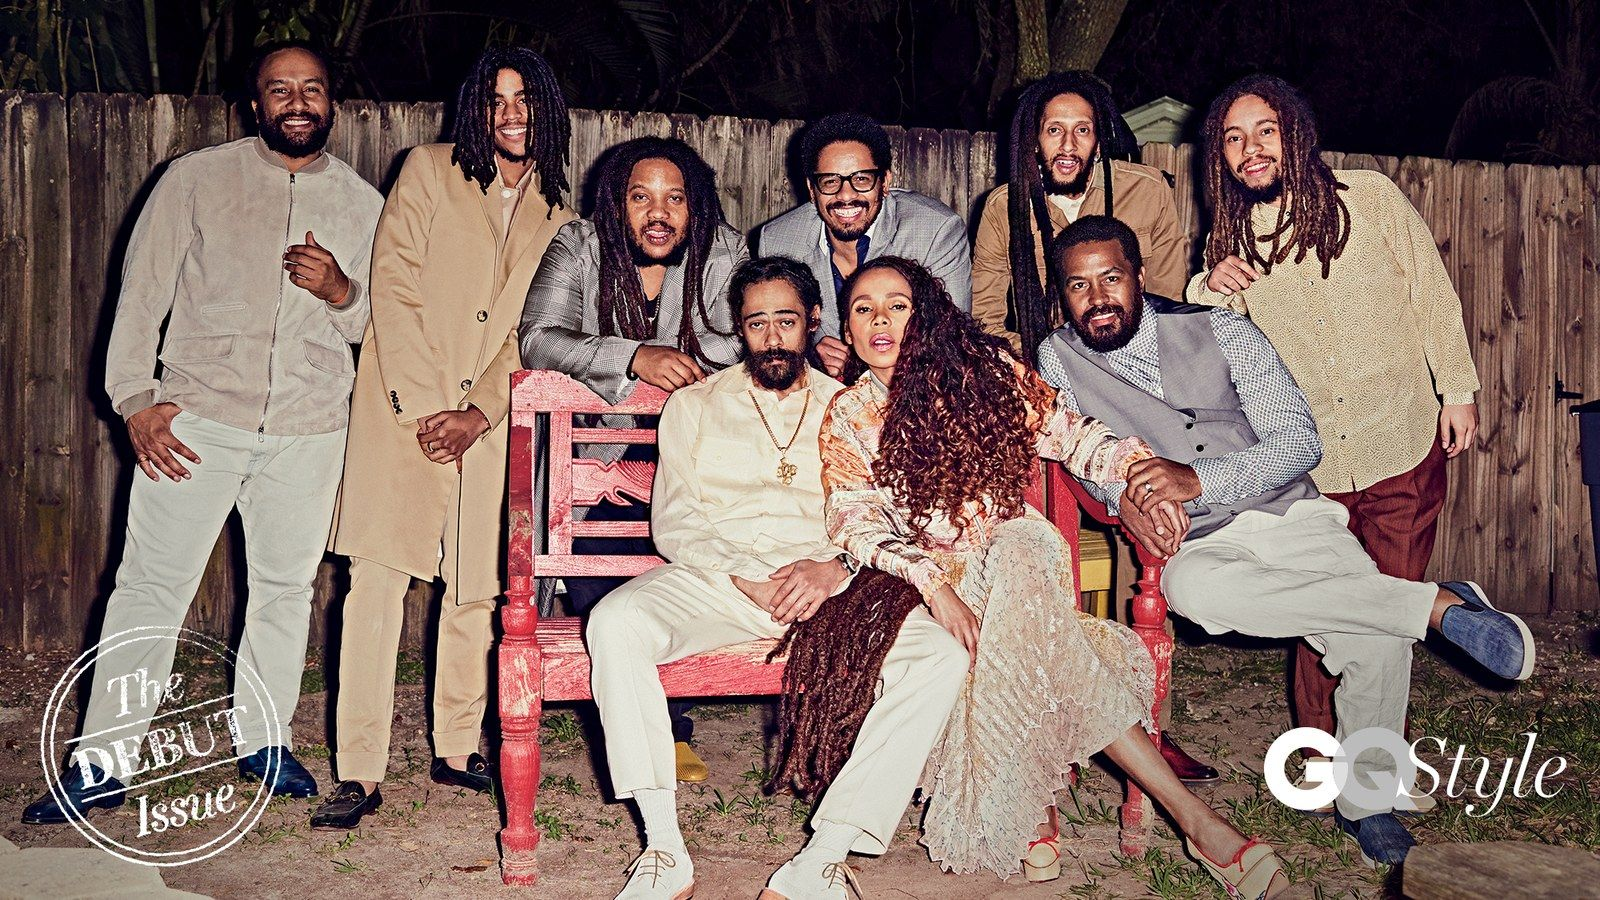 Exclusive Bob Marley S Family Reunites For Its First Photo Shoot In Over A Decade Marley Family Bob Marley Kids Bob Marley Pictures